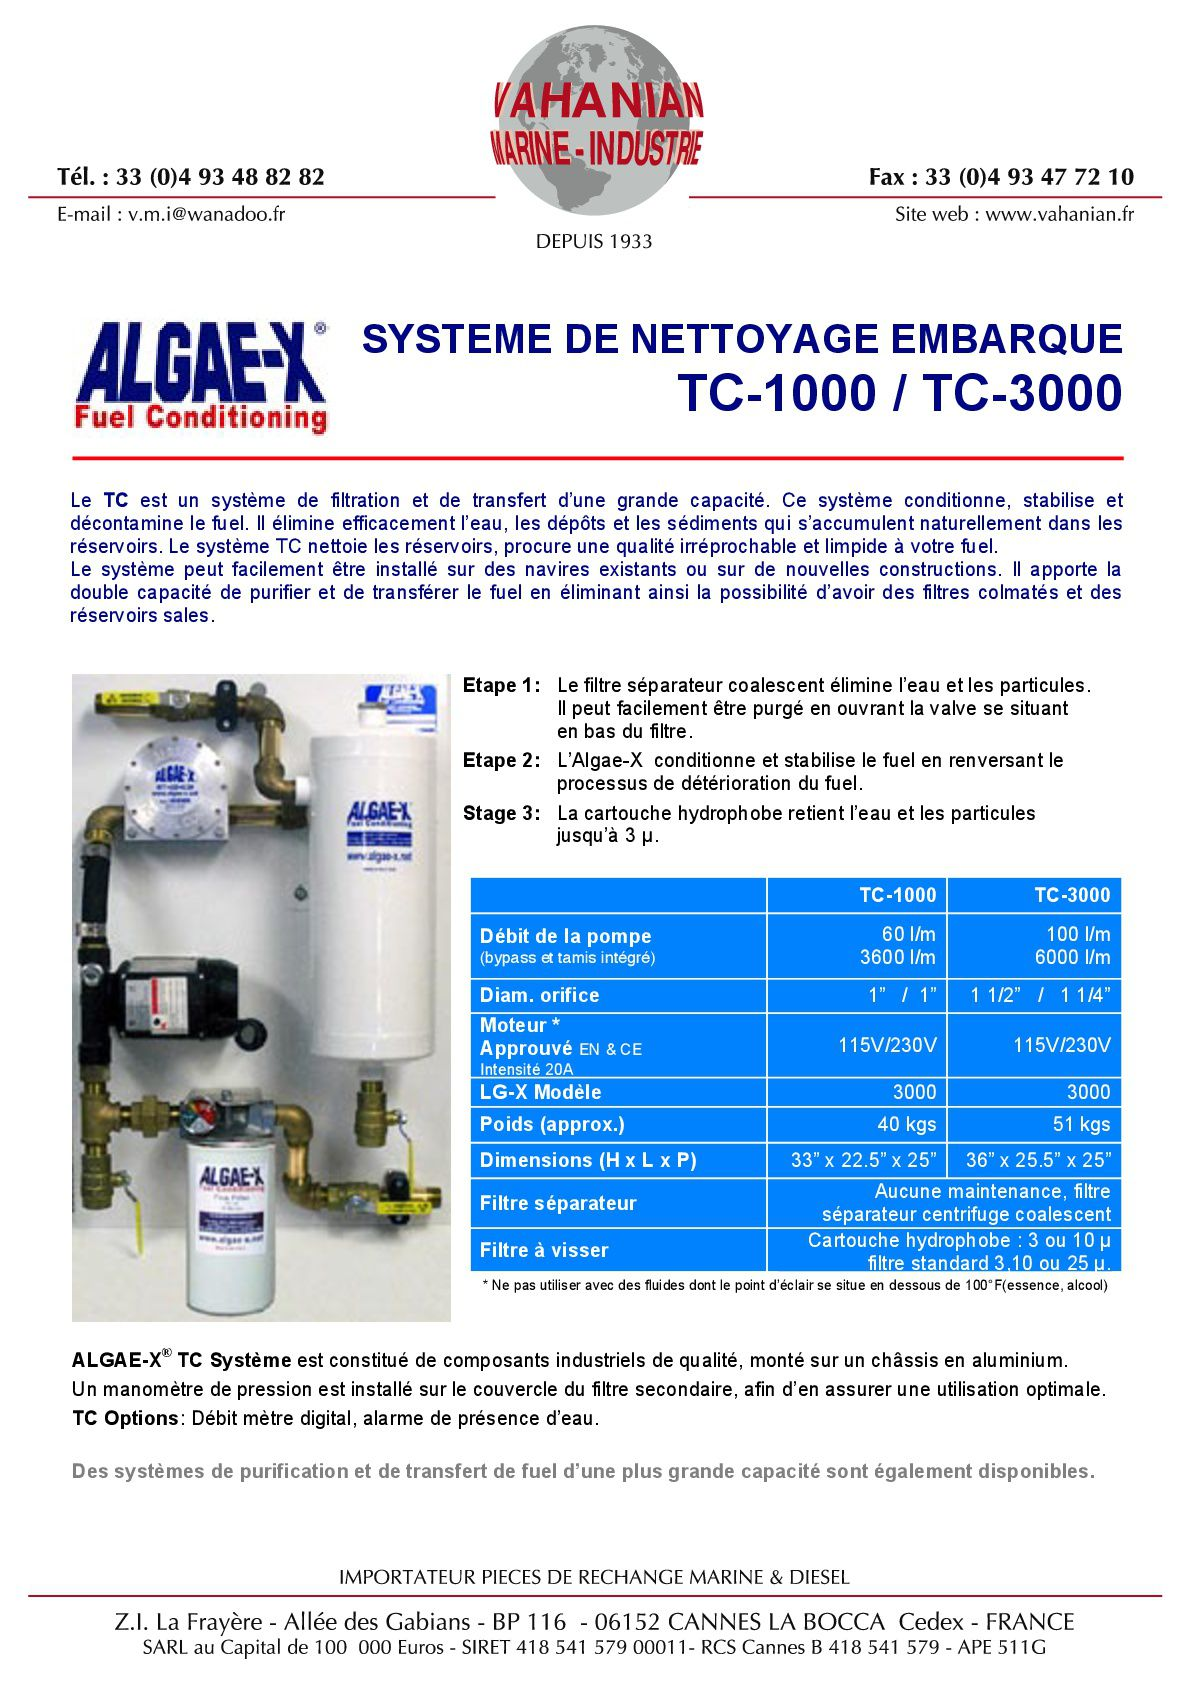 Document sur la purification de gasoil Algae-X.